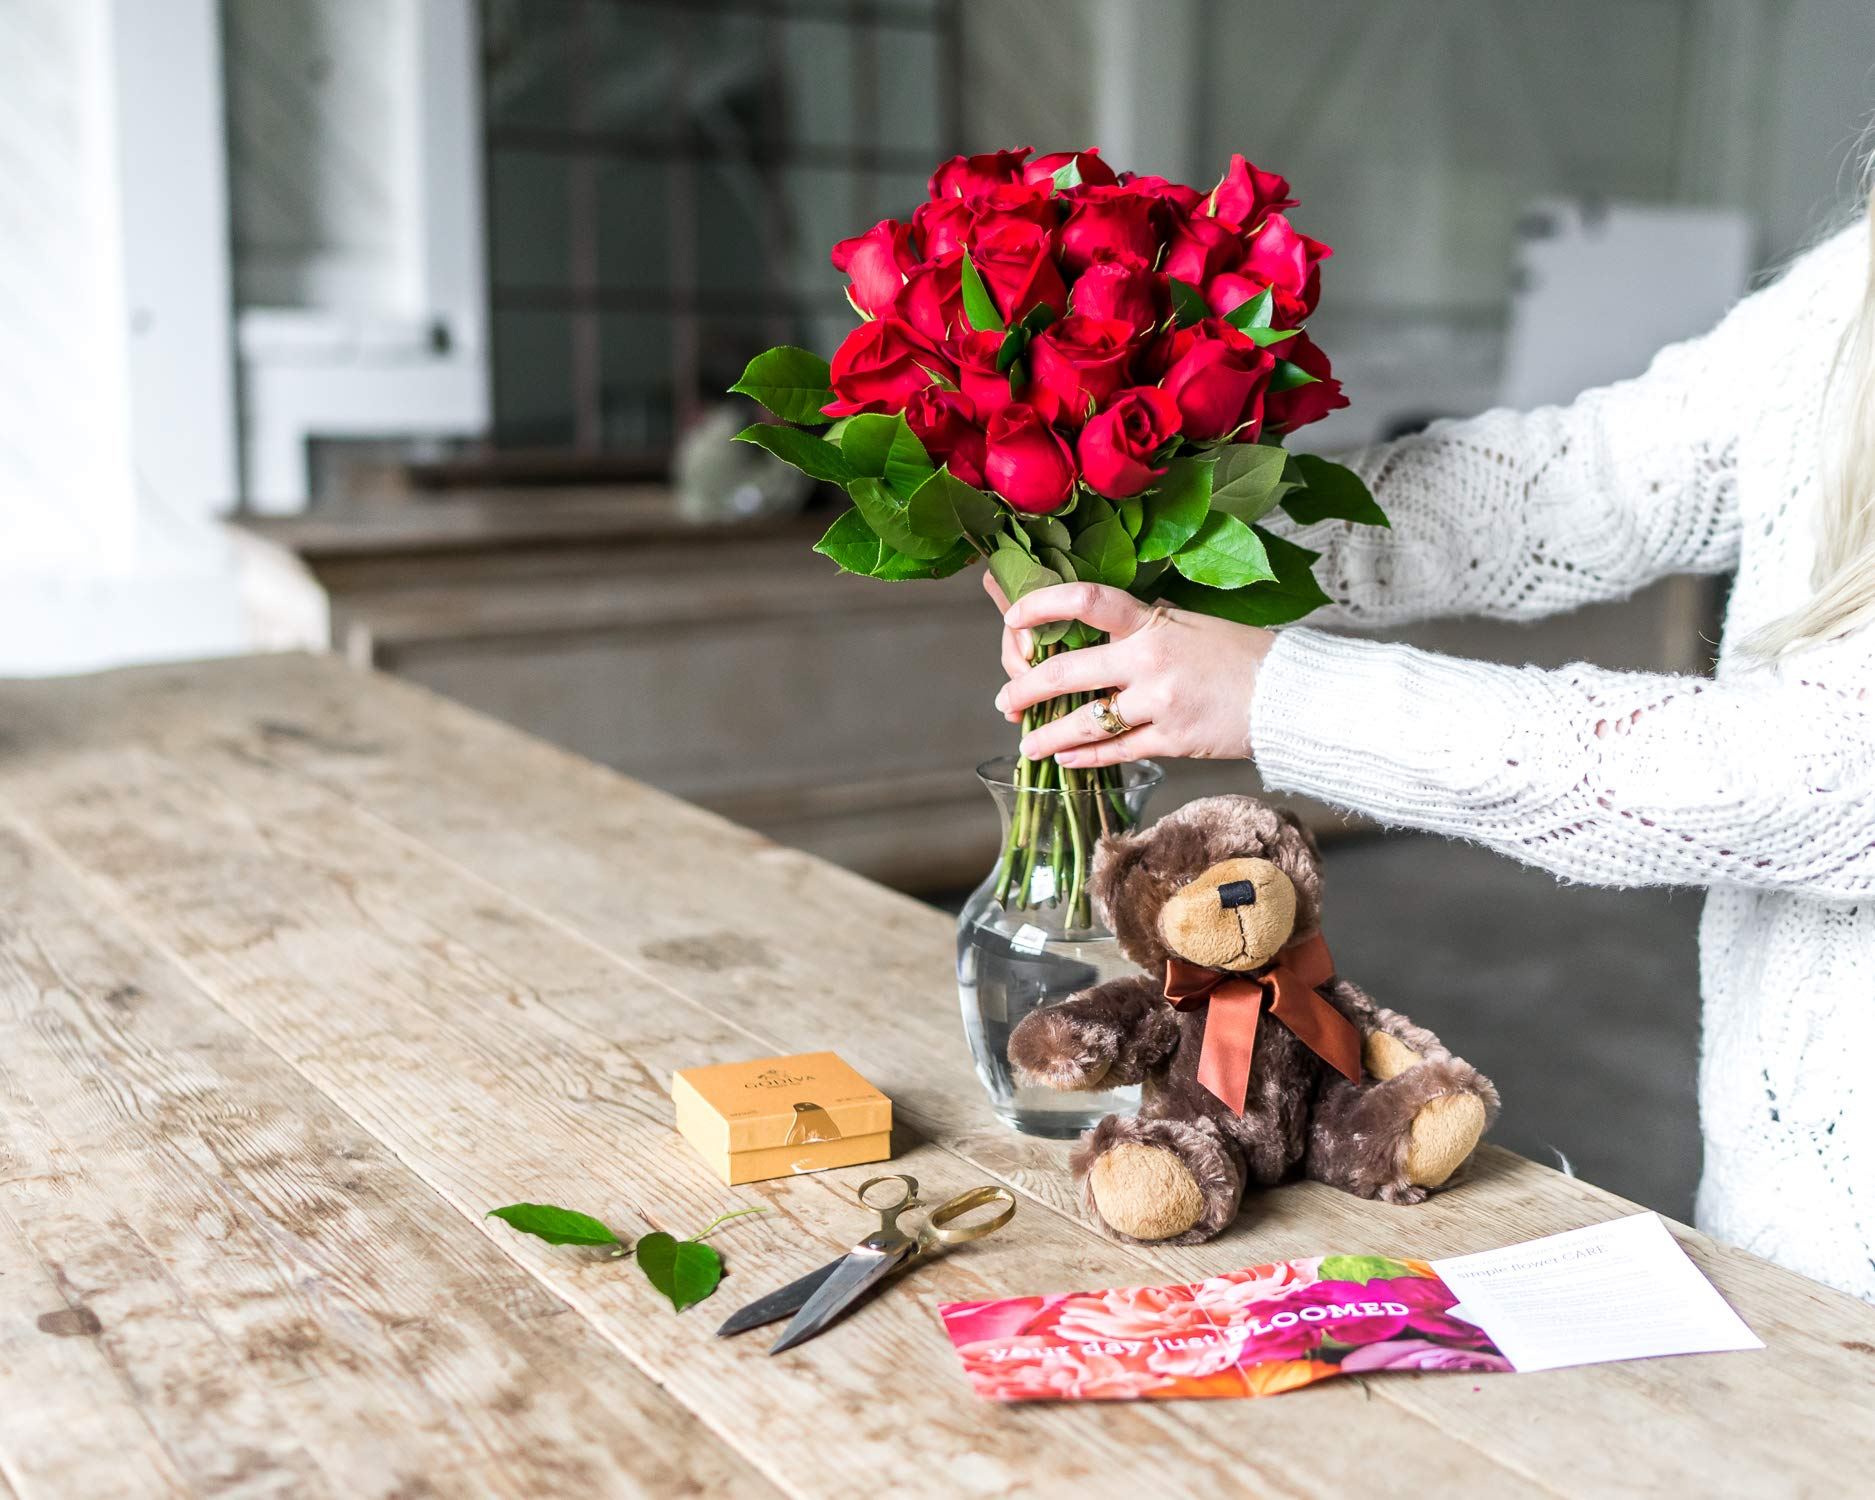 Flowers - Two Dozen Long Stemmed Red Roses with Godiva Chocolates & Bear (Free Vase Included) by From You Flowers (Image #4)